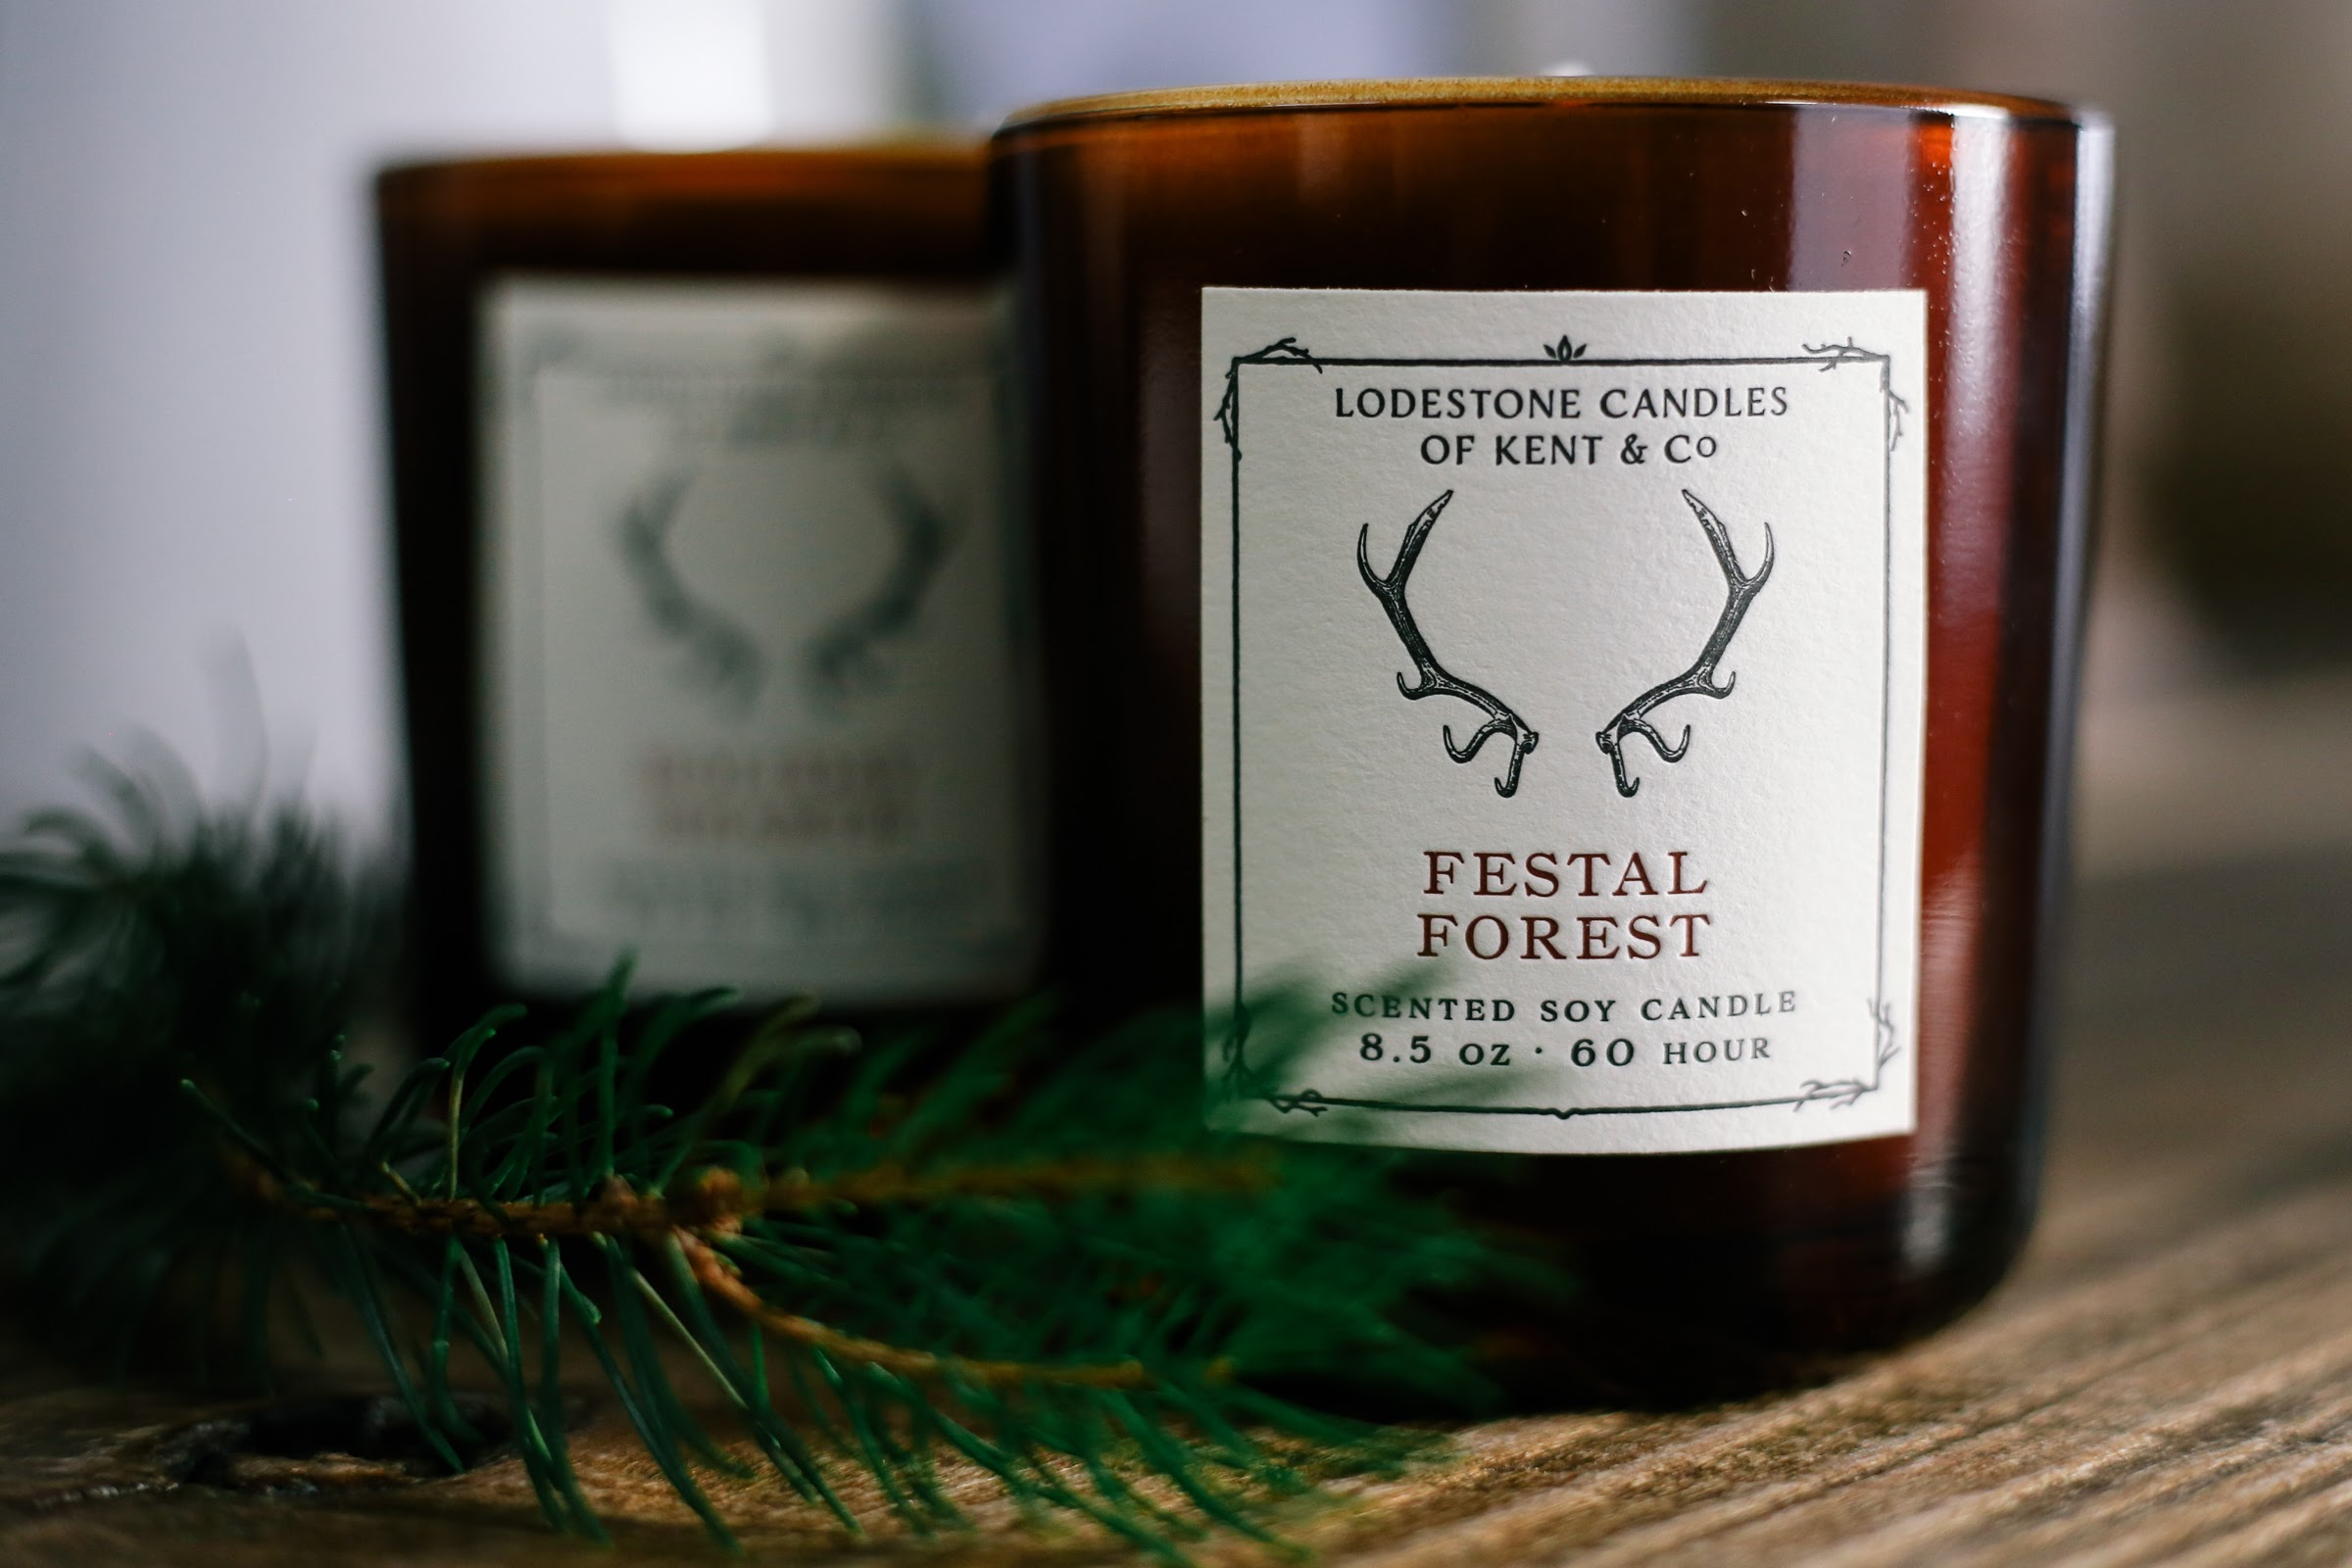 Lodestone Candles of Kent & Co